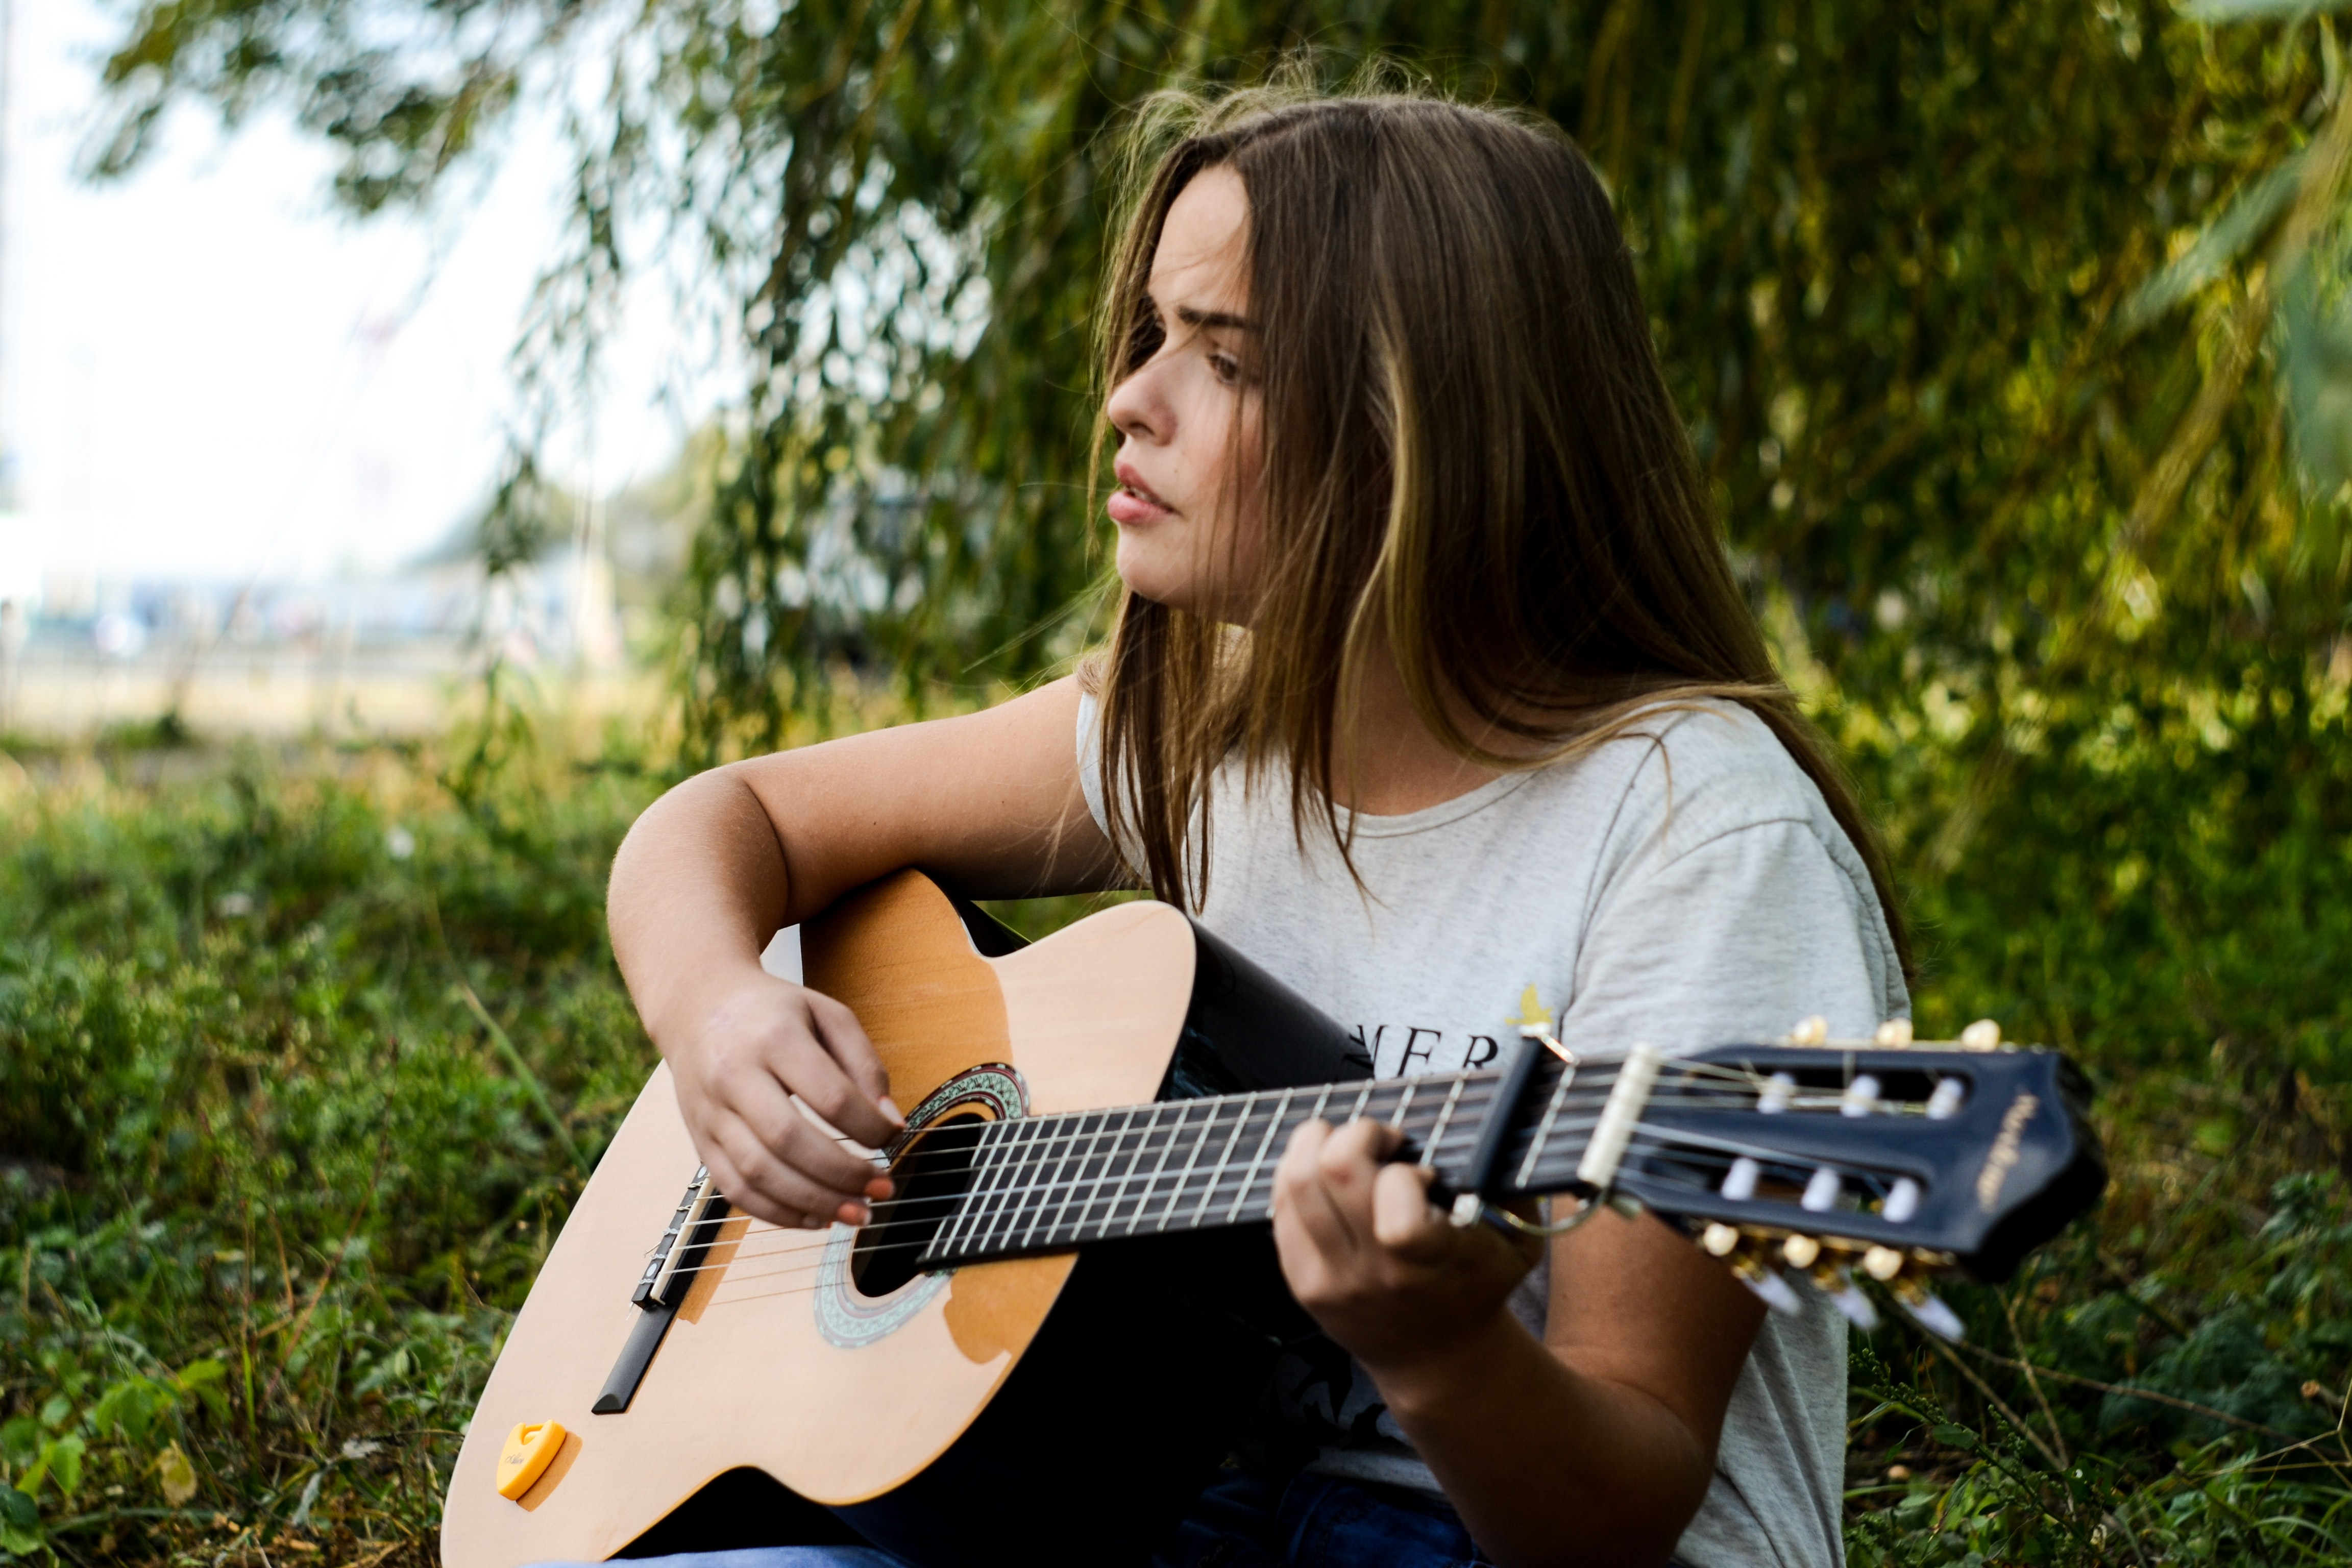 A young dark-haired woman playing acoustic guitar while sitting on grass